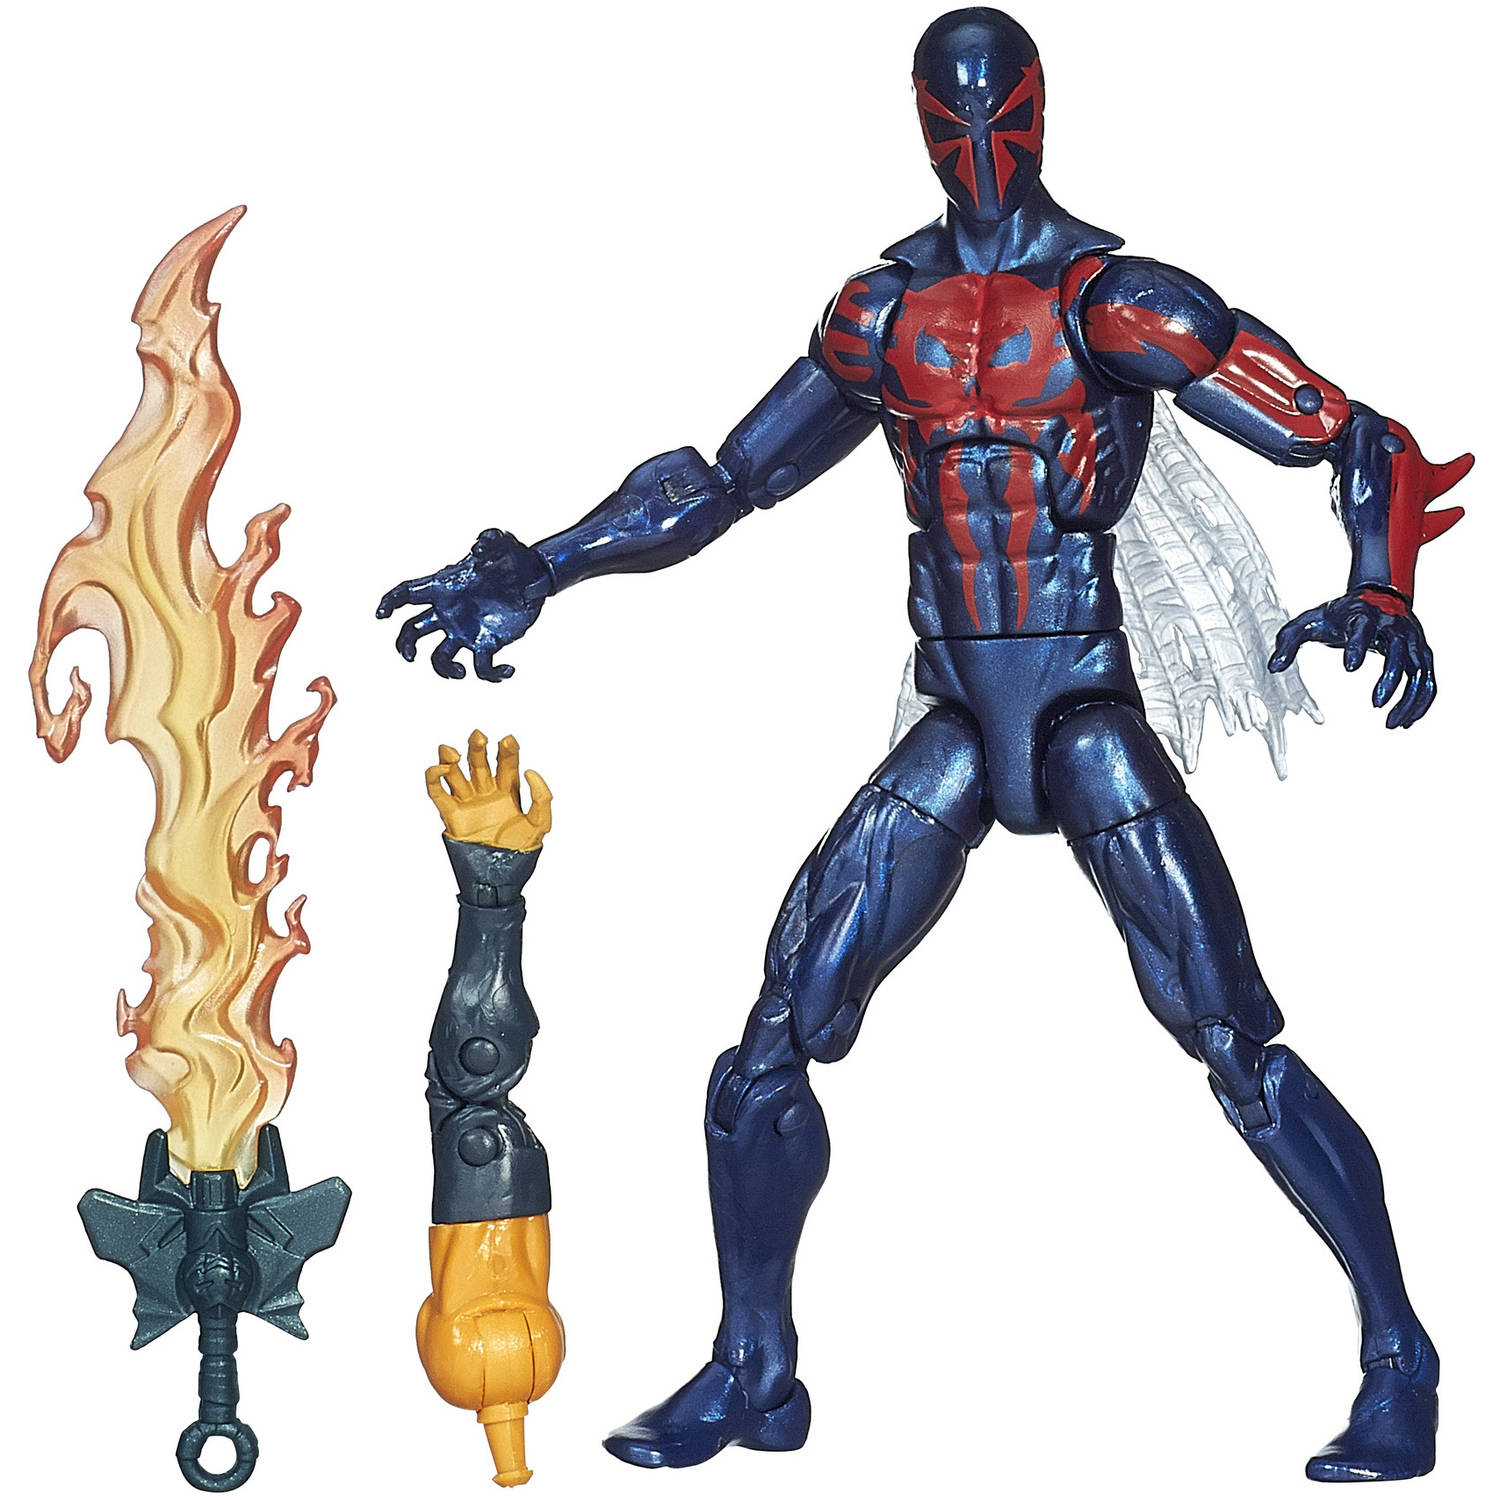 Marvel Legends Infinite Series Spider-Man 2099 Figure by